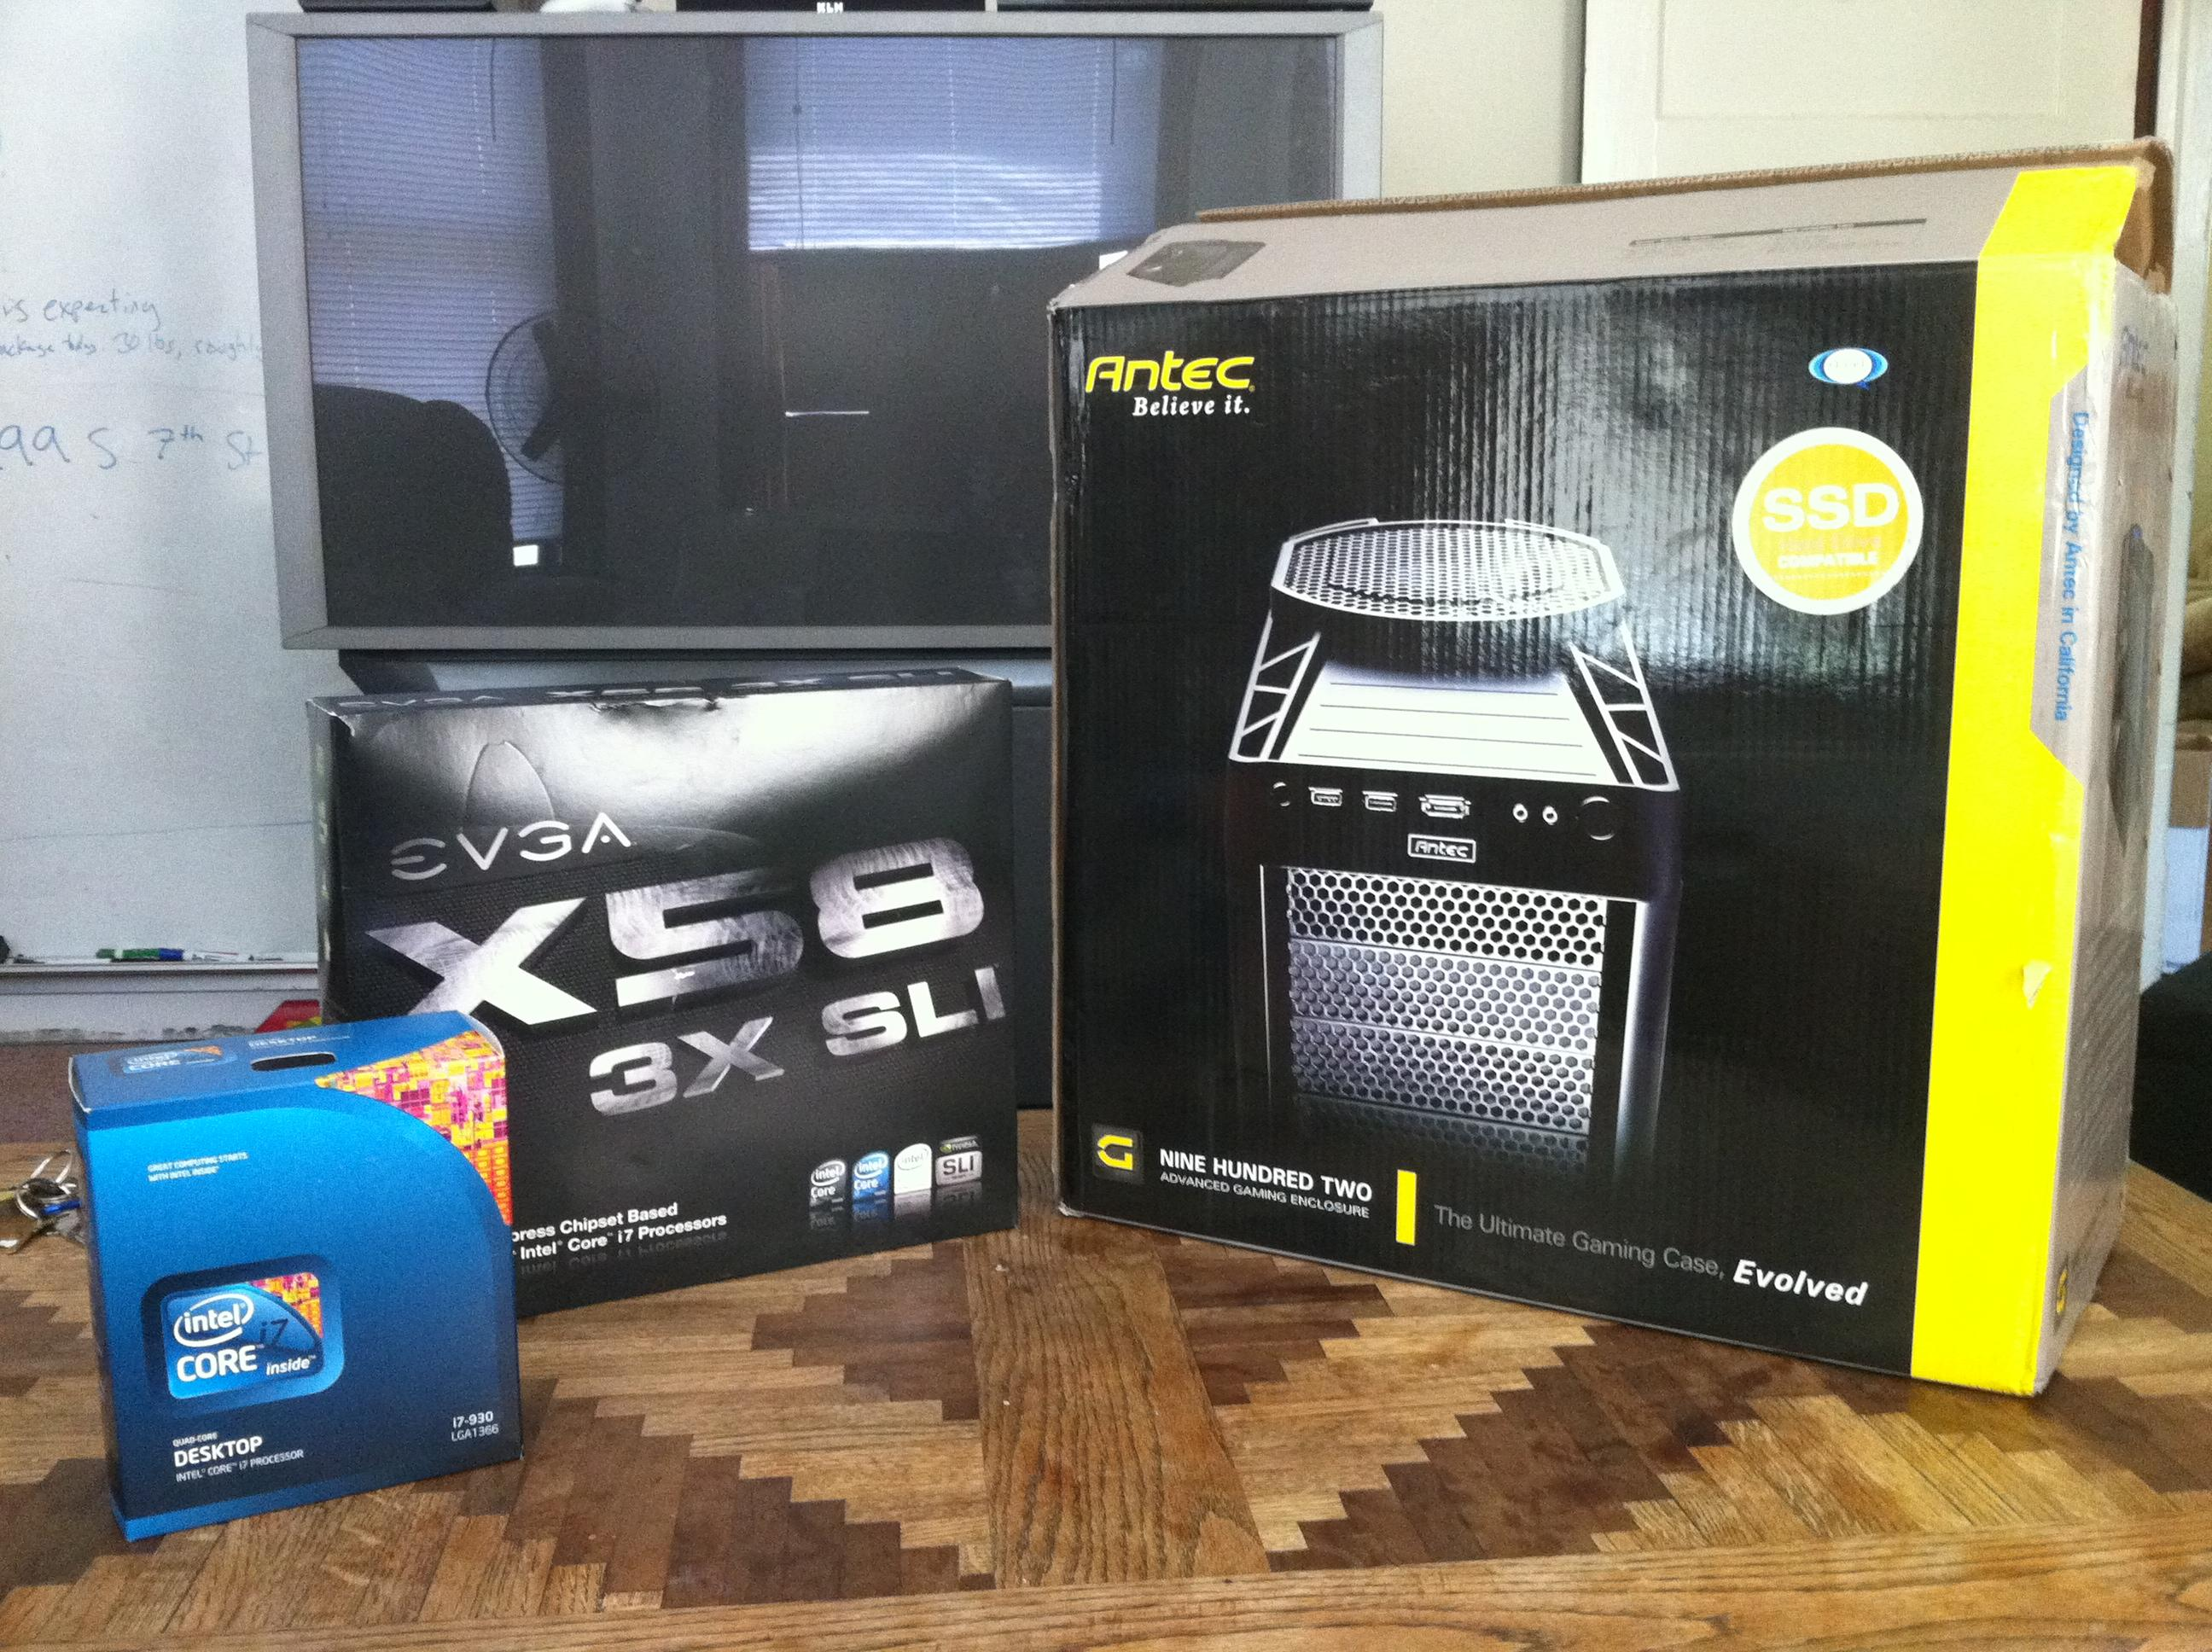 Mobo, Processor and Case